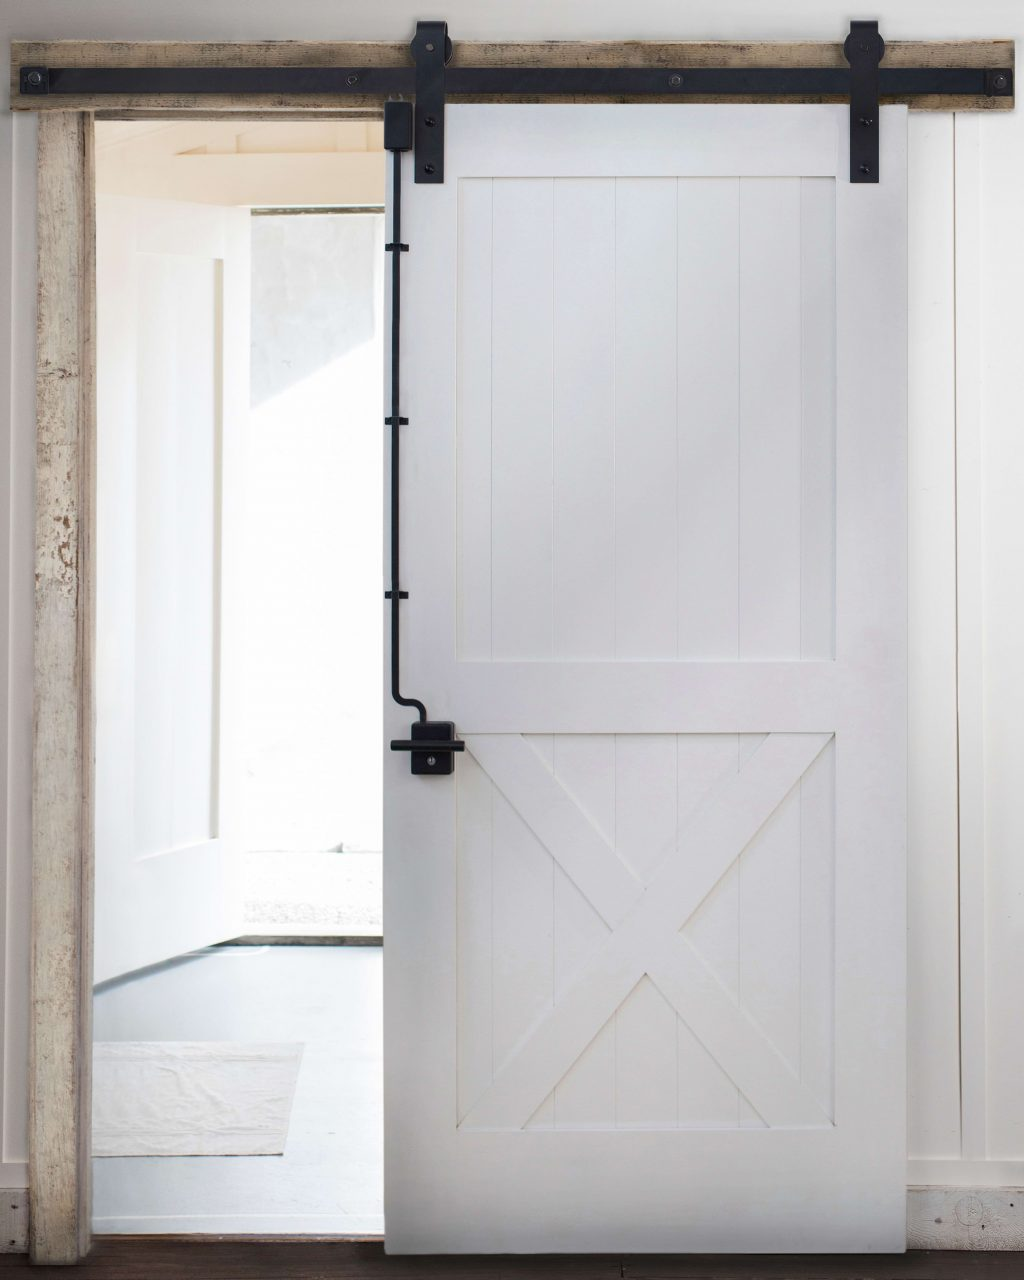 Sliding Barn Door Lock System In 2019 Farmhouse Barn Door Locks